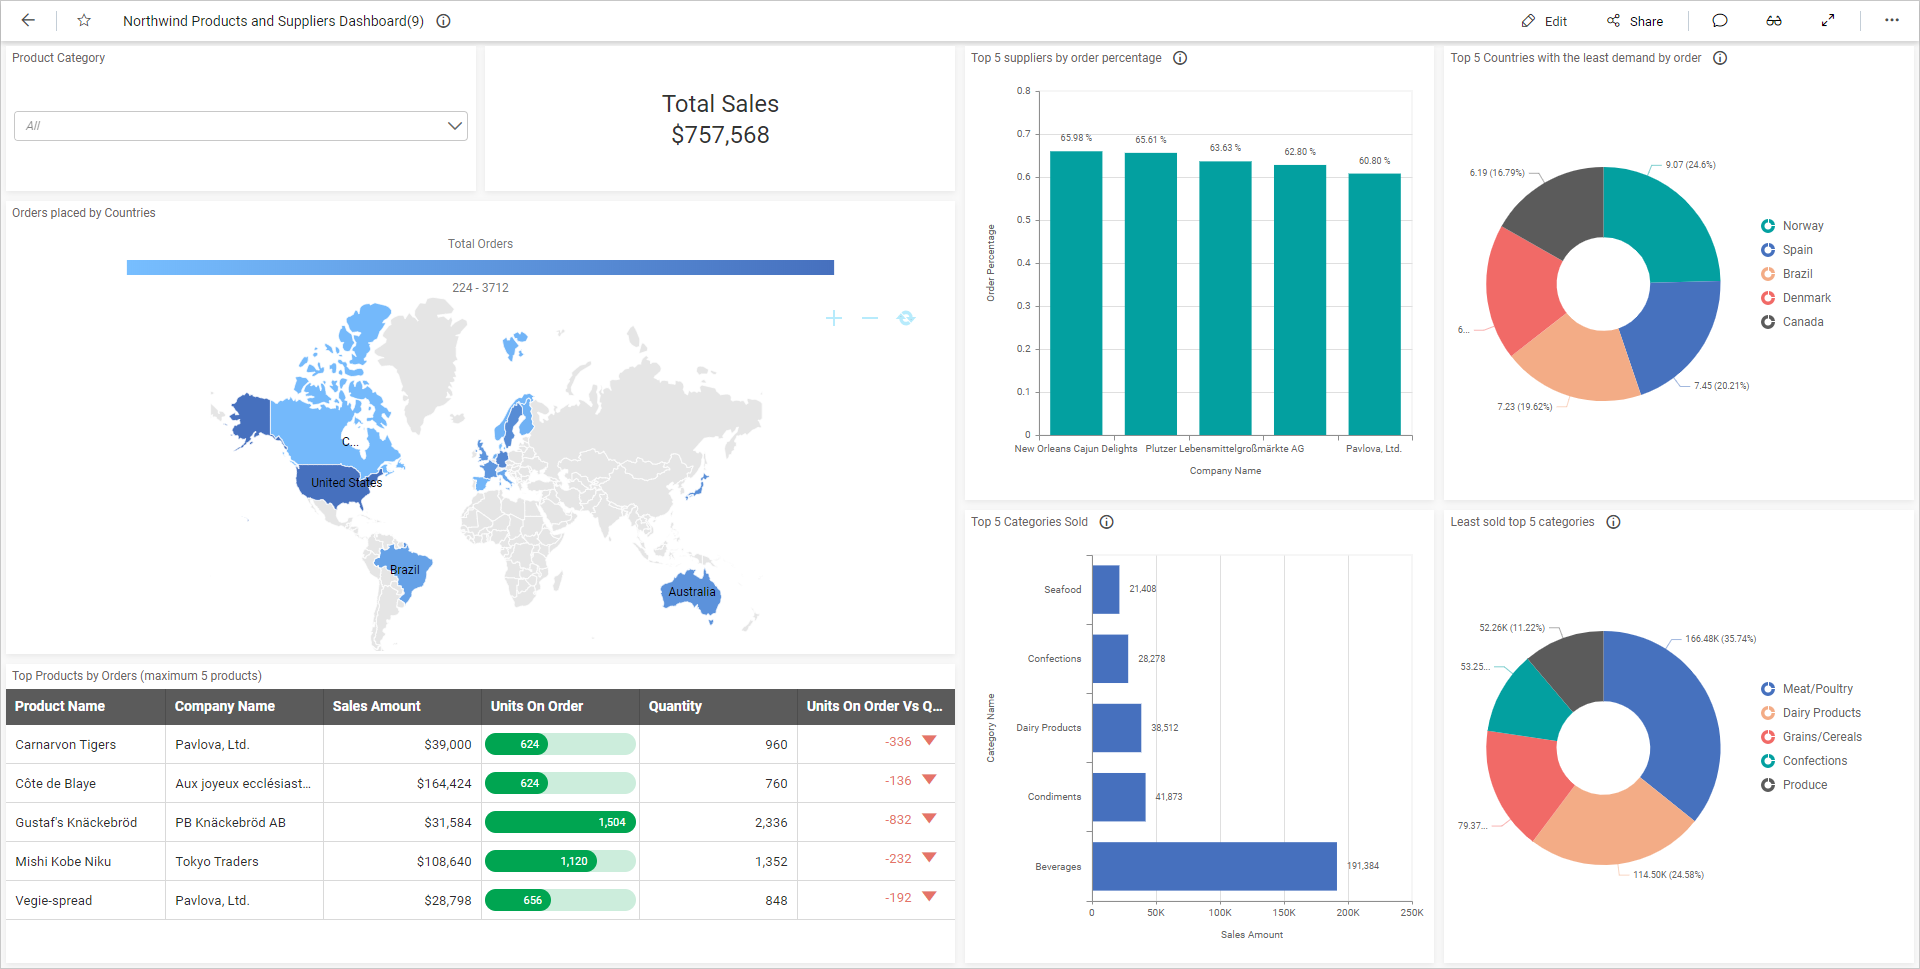 Northwind Products and Suppliers dashboard